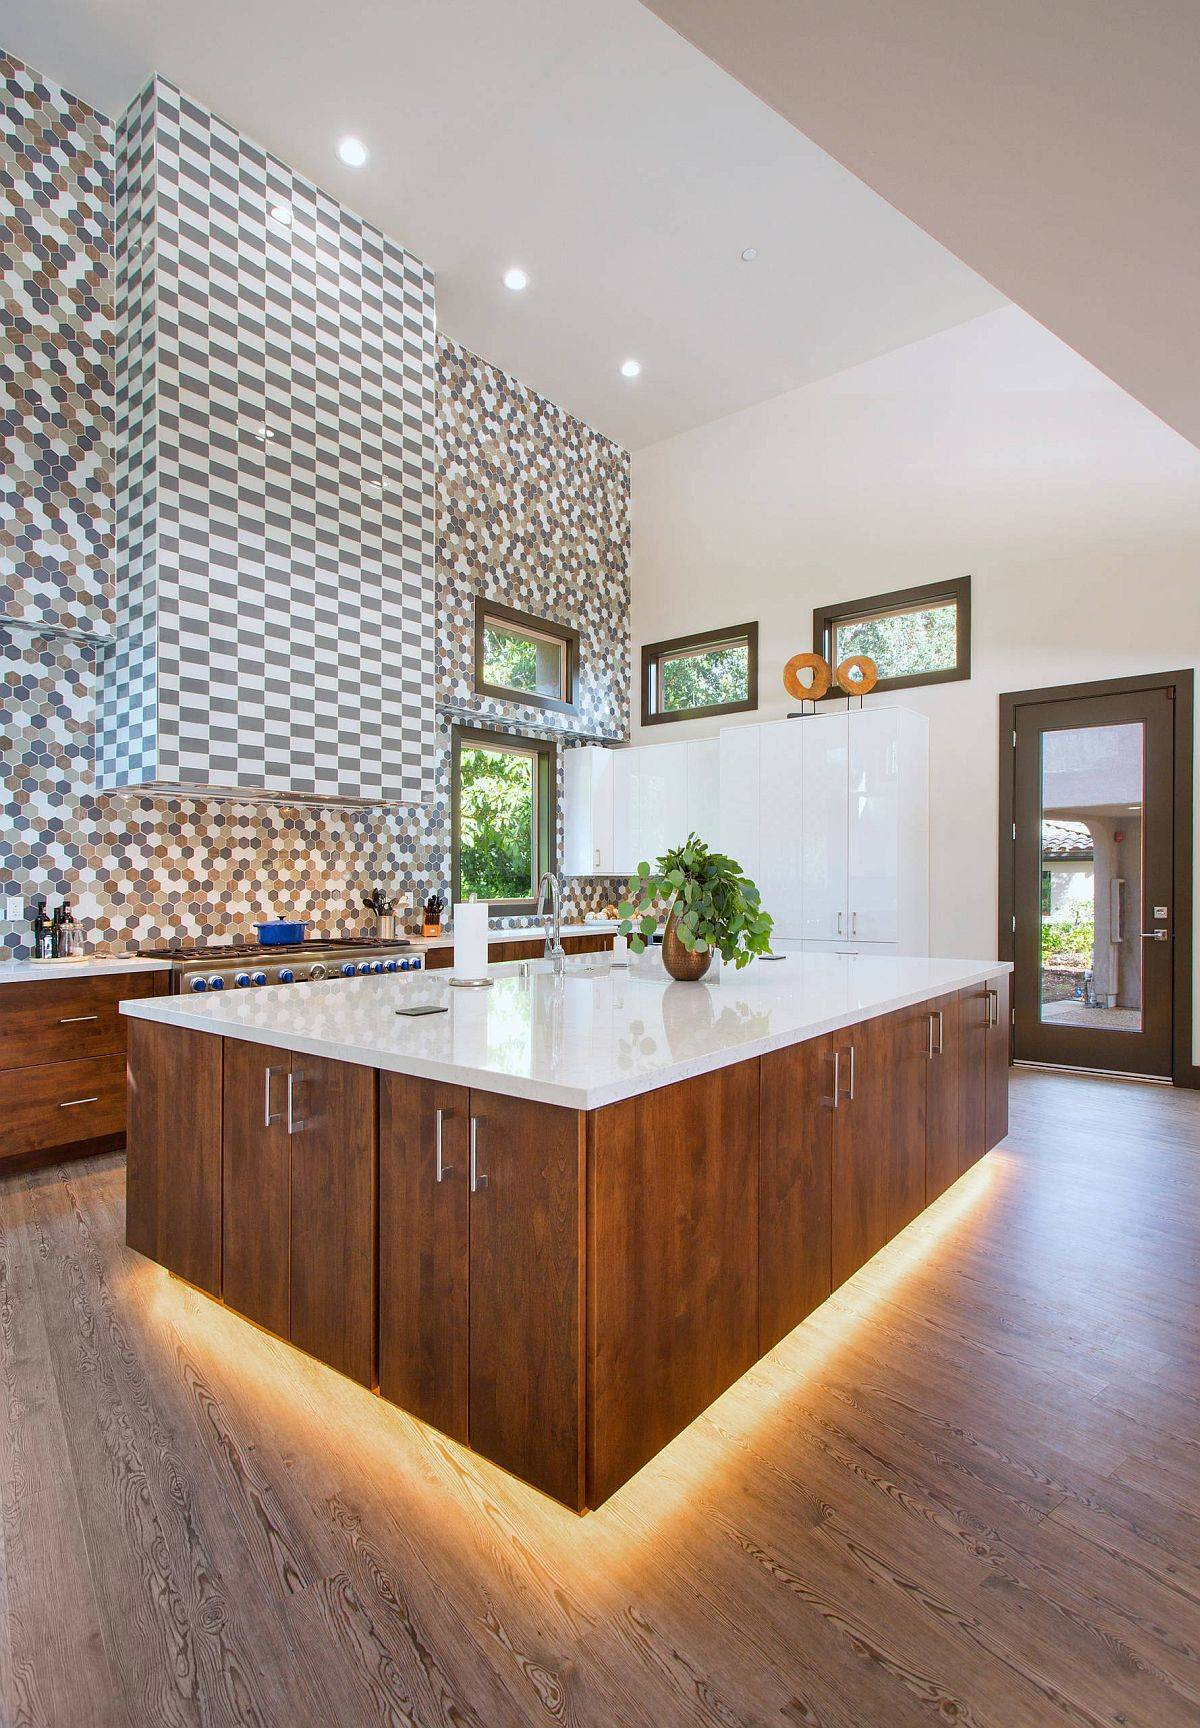 Lighting-beneath-the-kitchen-island-gives-it-a-fabulous-visual-appeal-89131